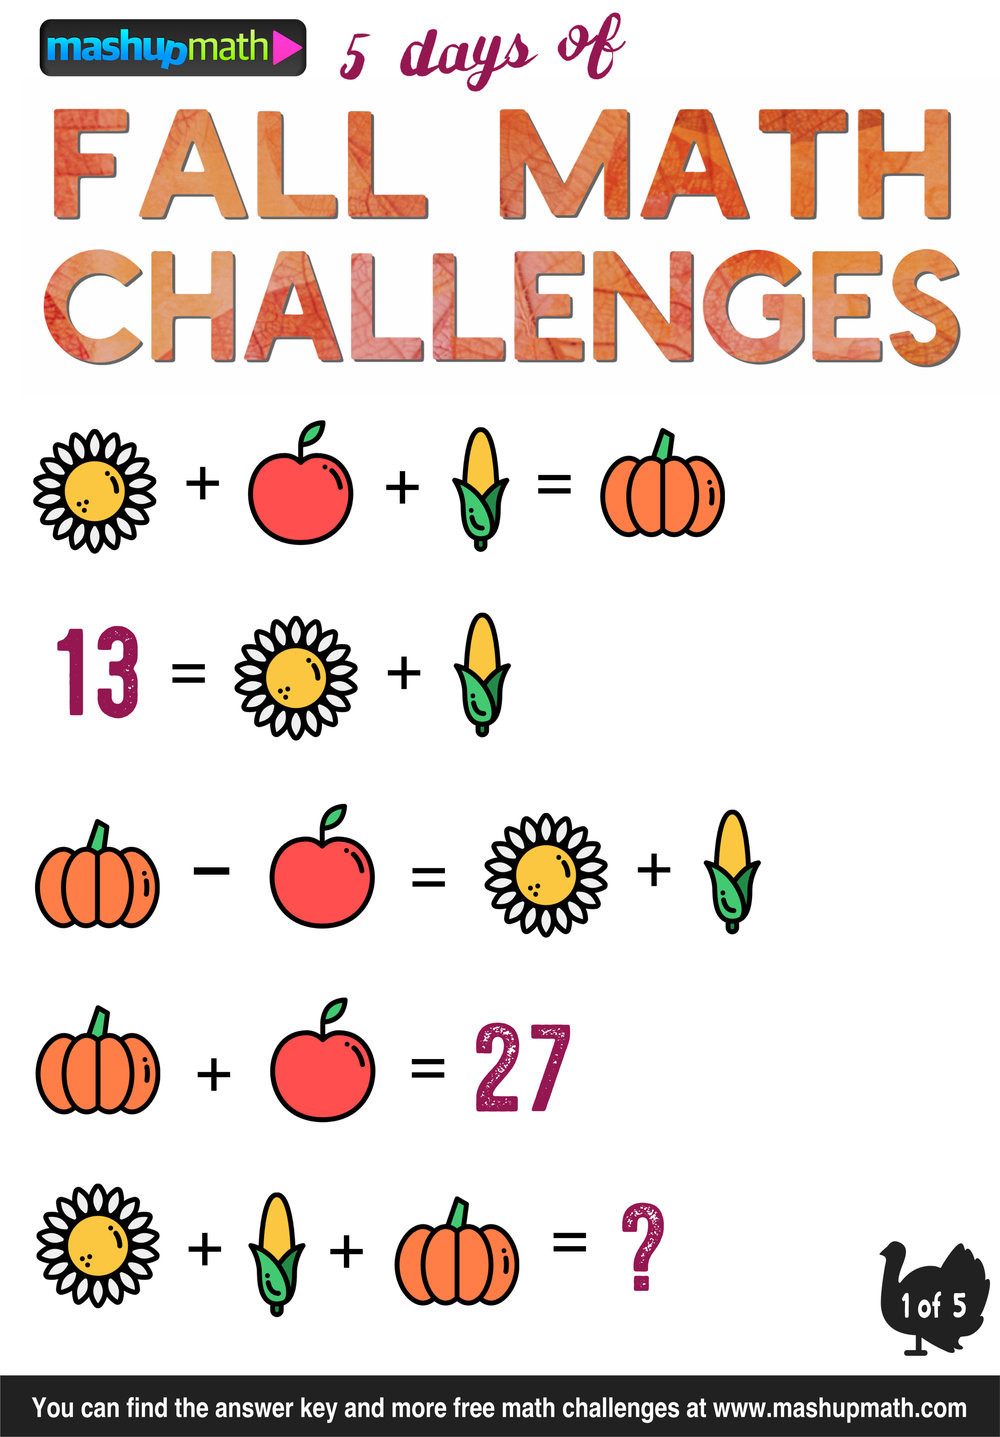 Challenge Math Worksheets are Your Kids Ready for 5 Days Of Fall Math Challenges